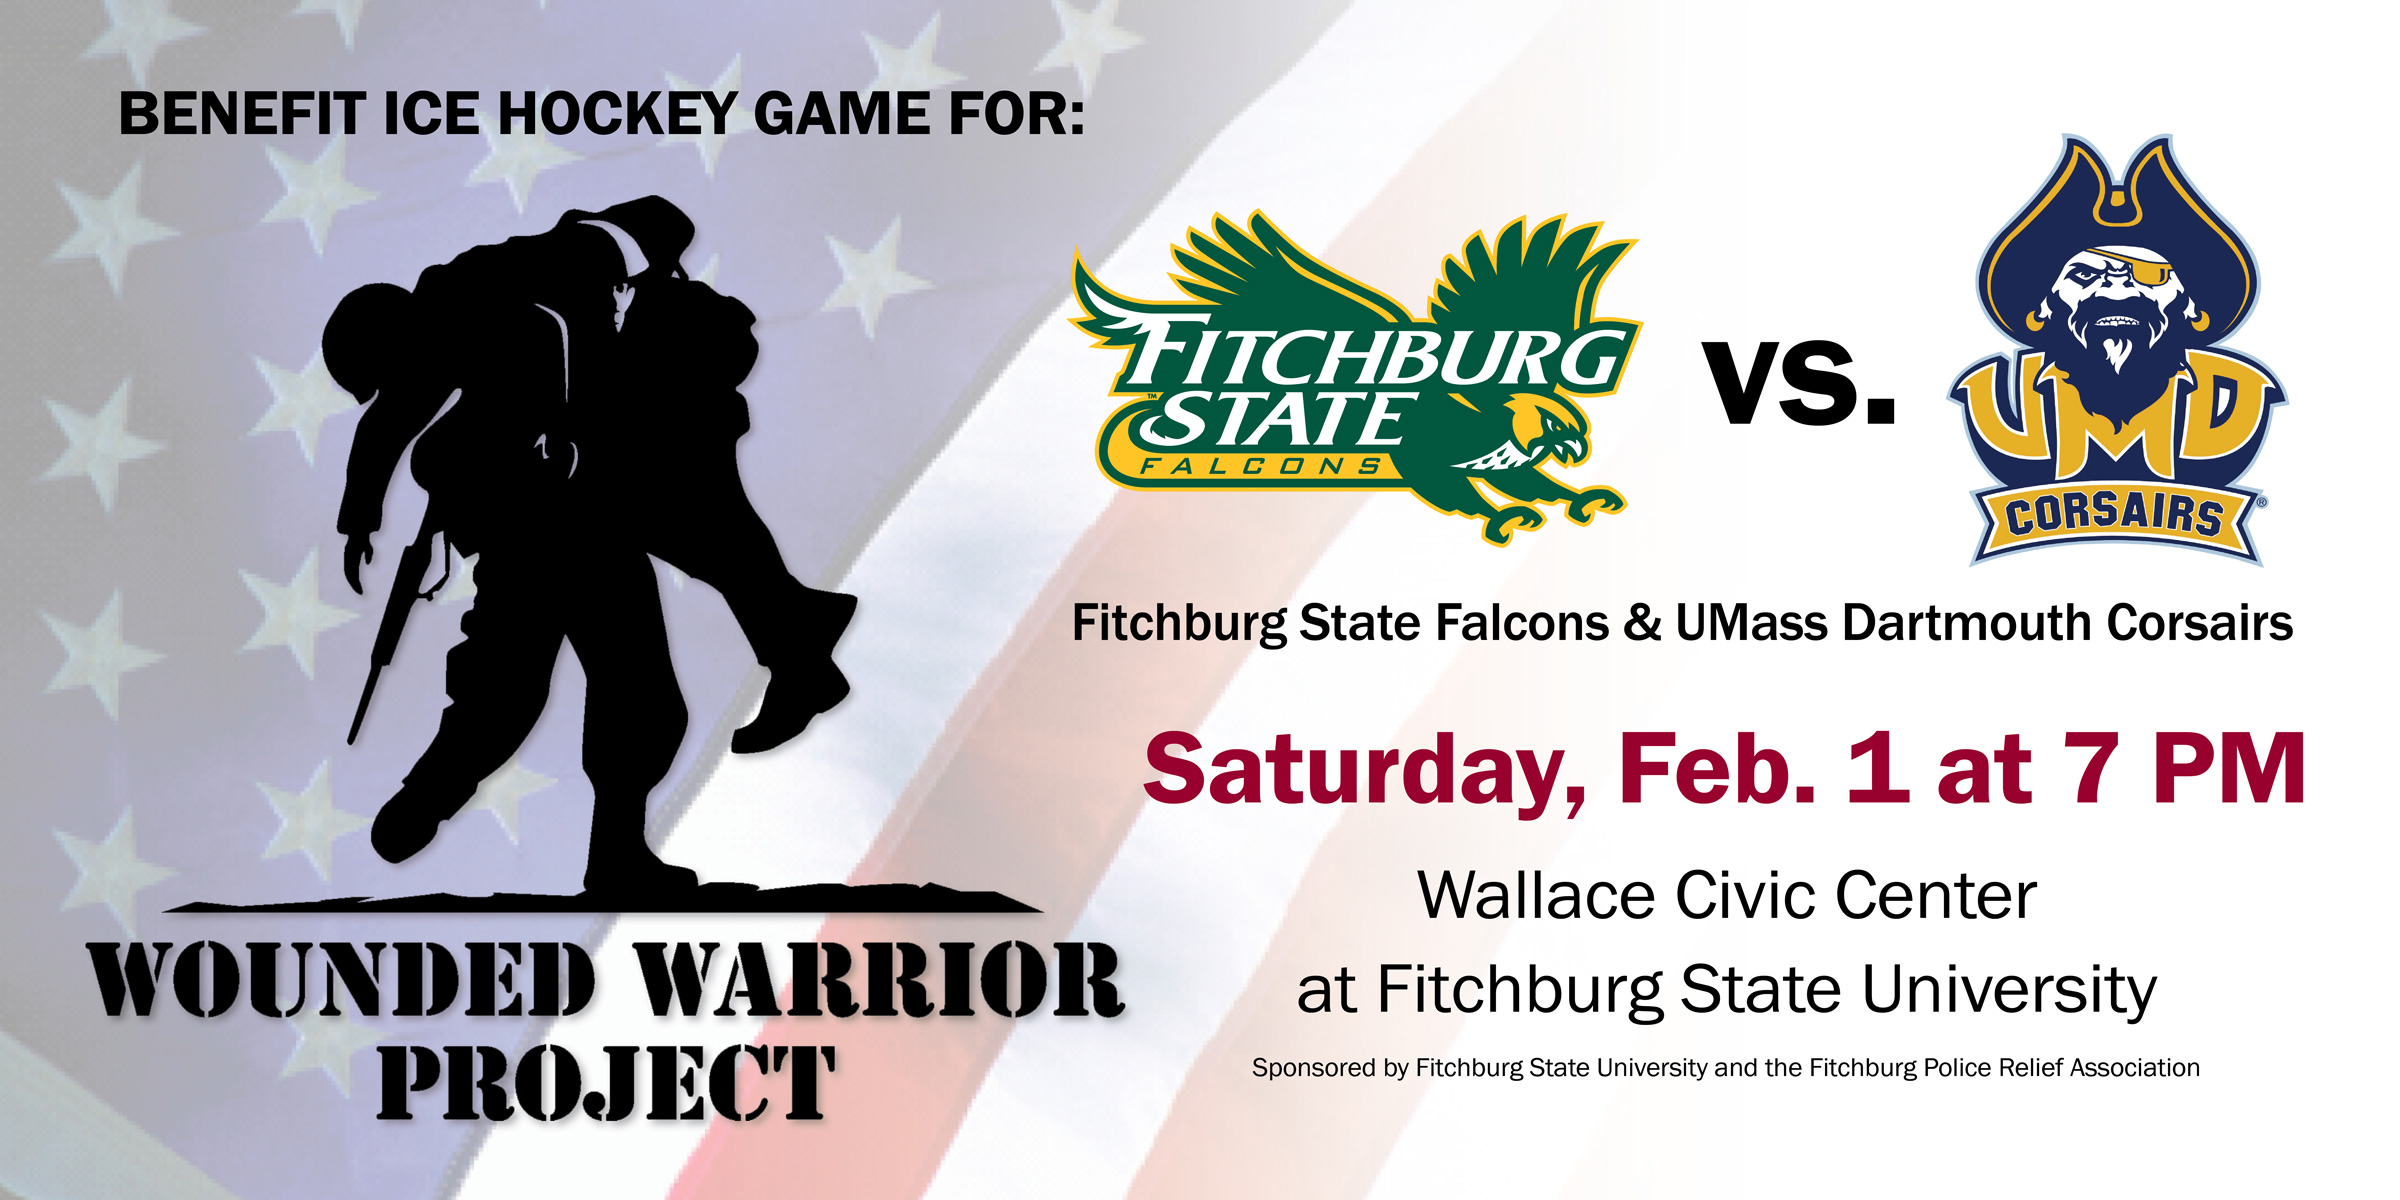 2014 Wounded Warrior Benefit Game